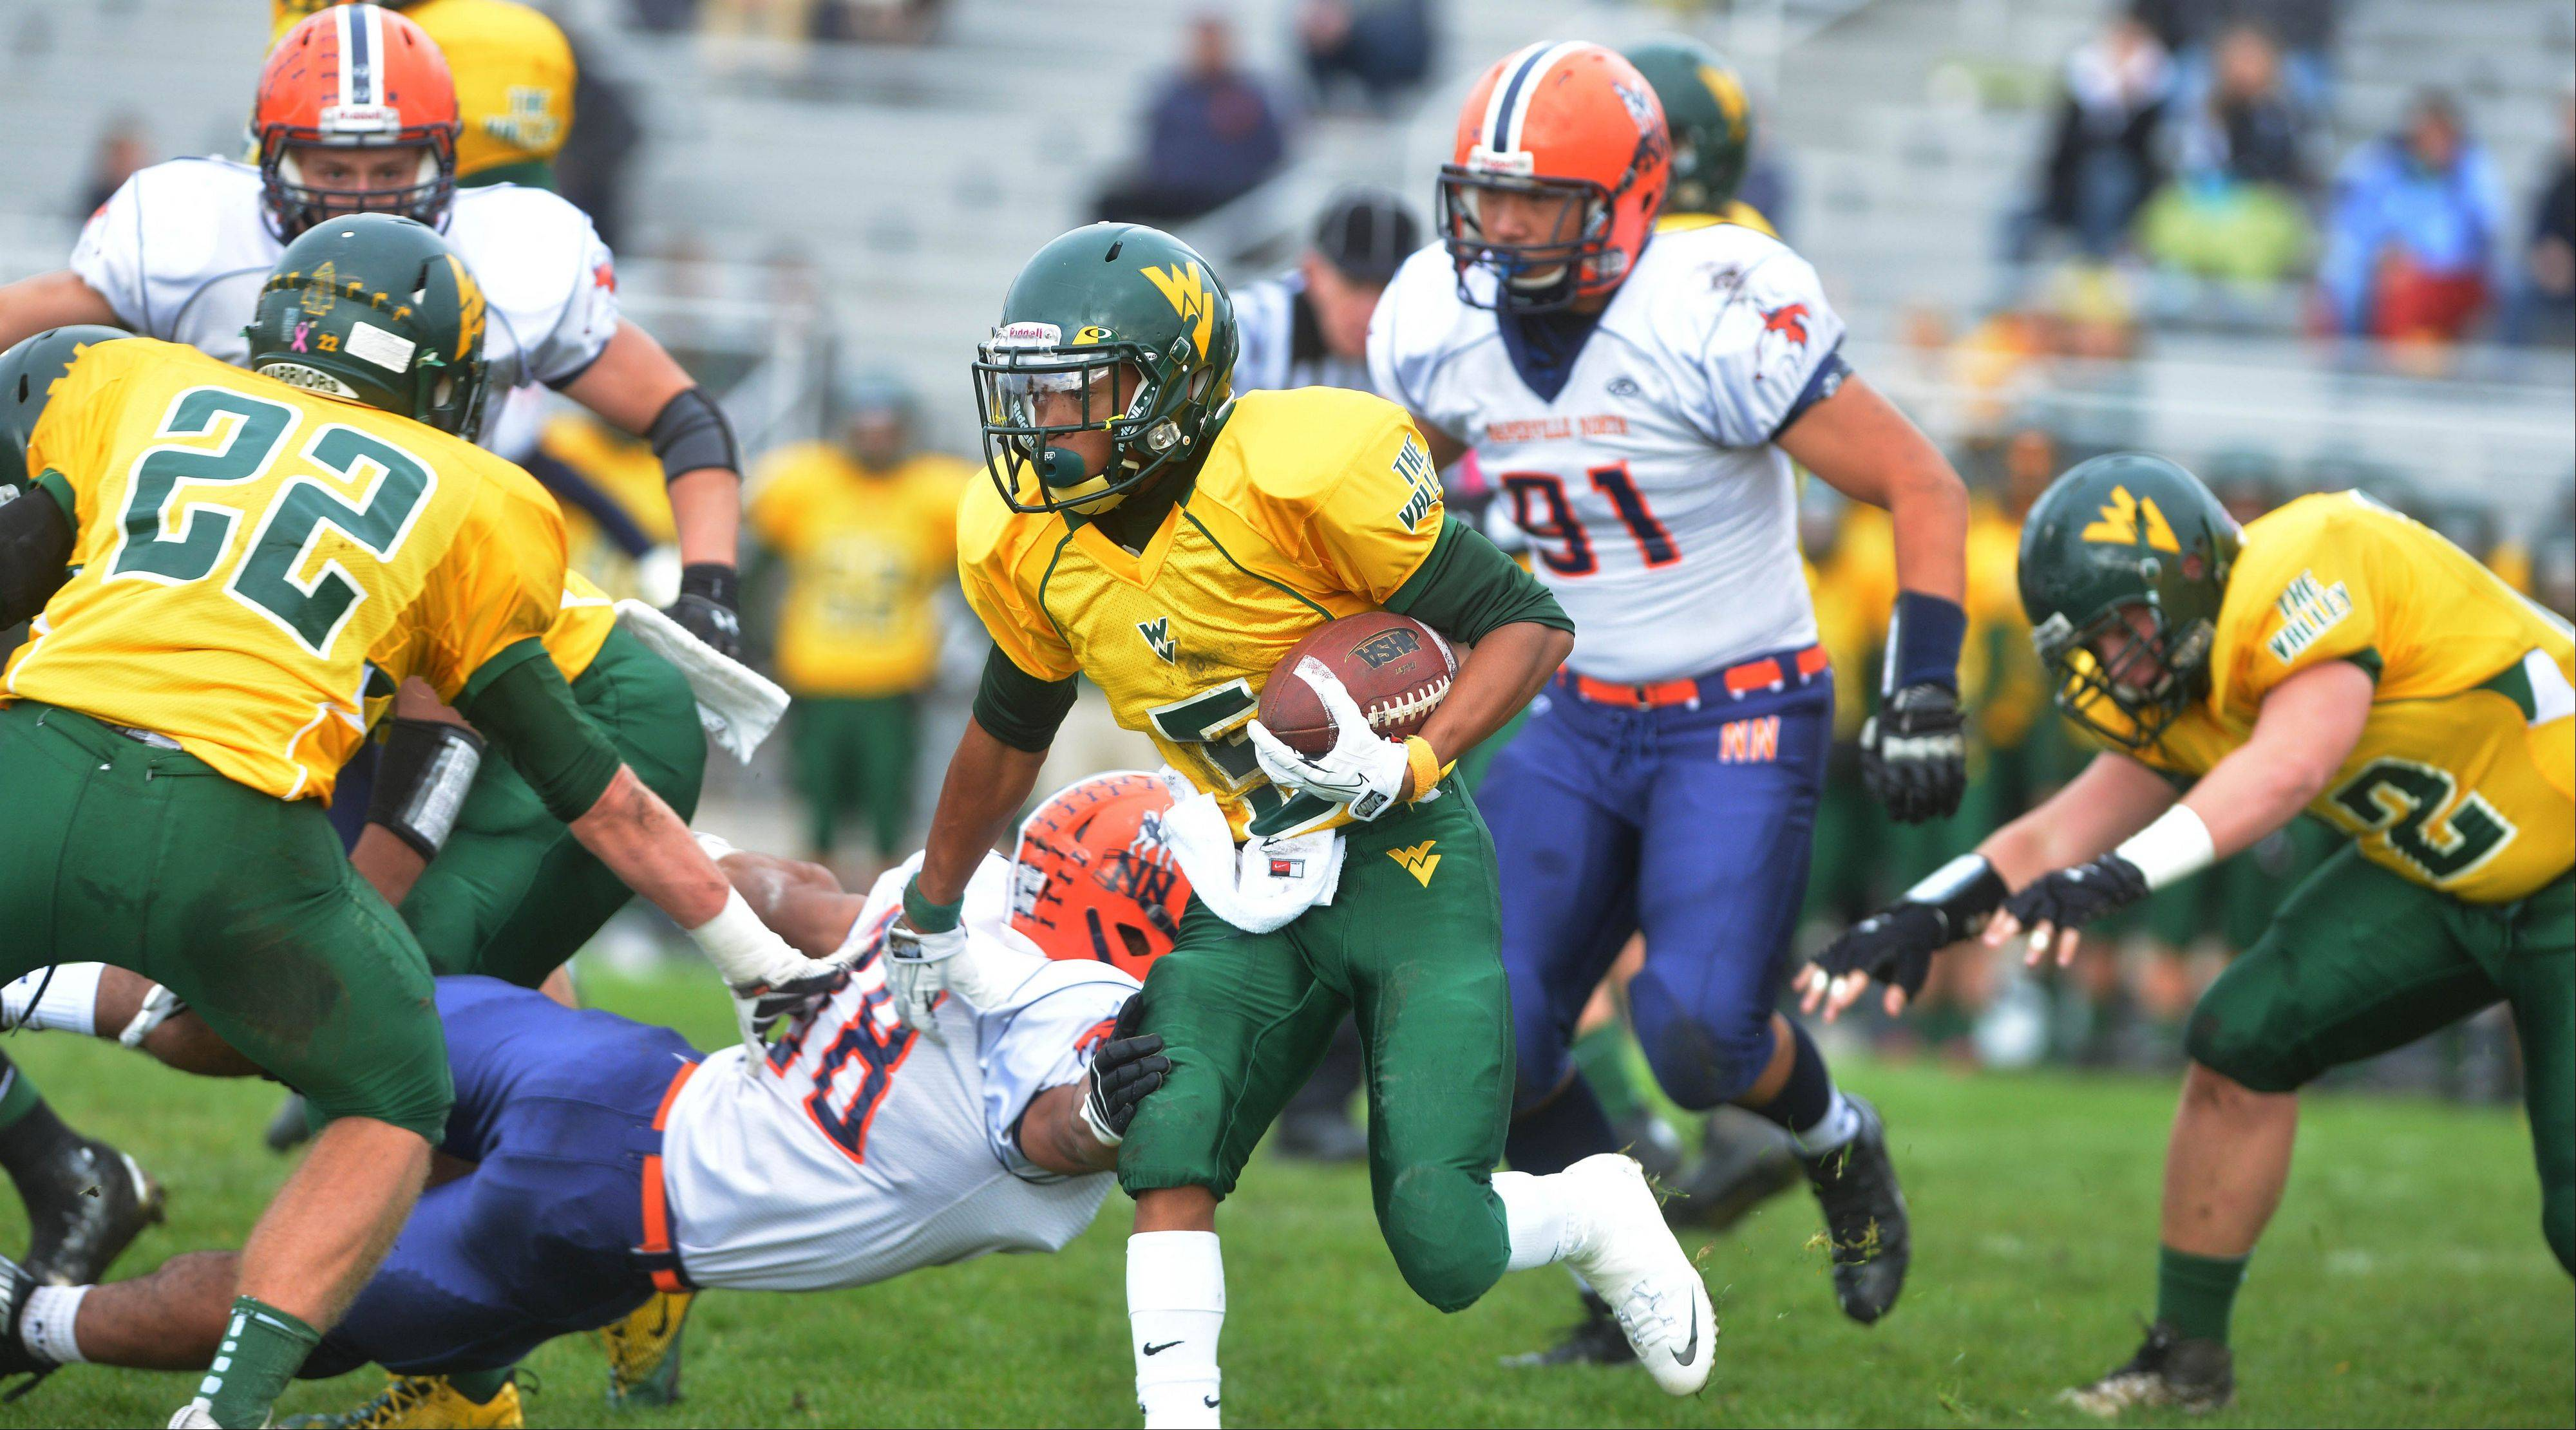 Devin Strickland of Waubonsie is on the run during the Naperville North at Waubonsie Valley football playoff opener Saturday.